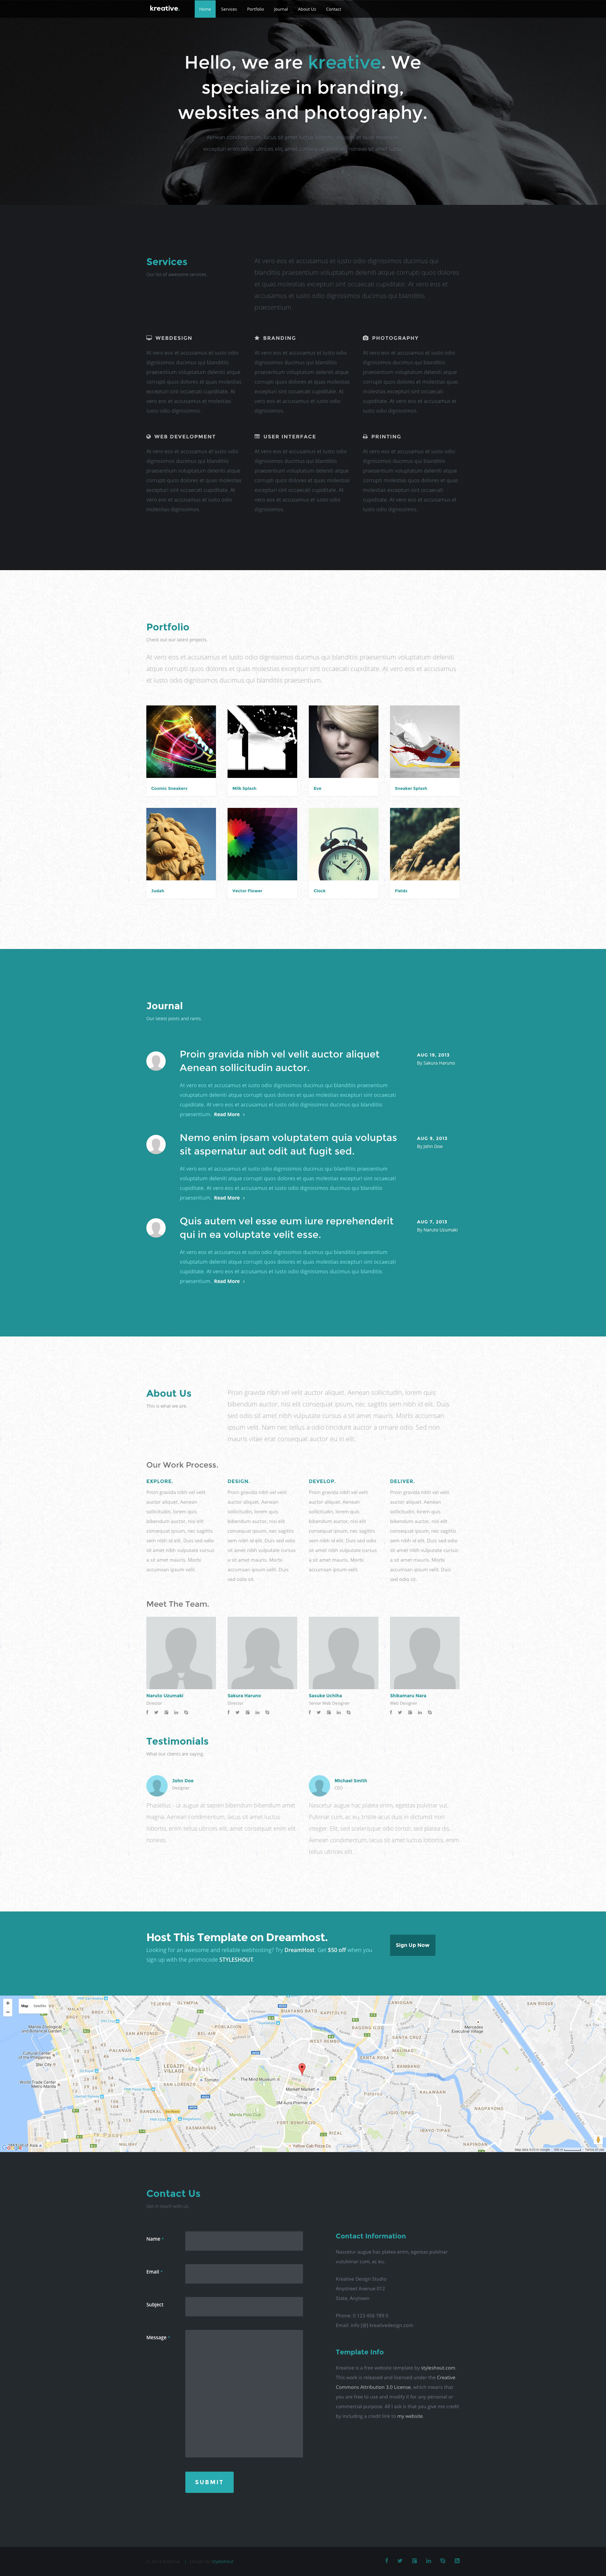 Kreative is a modern, fully responsive multipurpose HTML5  website template built with the latest HTML5 & CSS3. This template could be used for agency, portfolio, landing page, small business and freelancer sites.